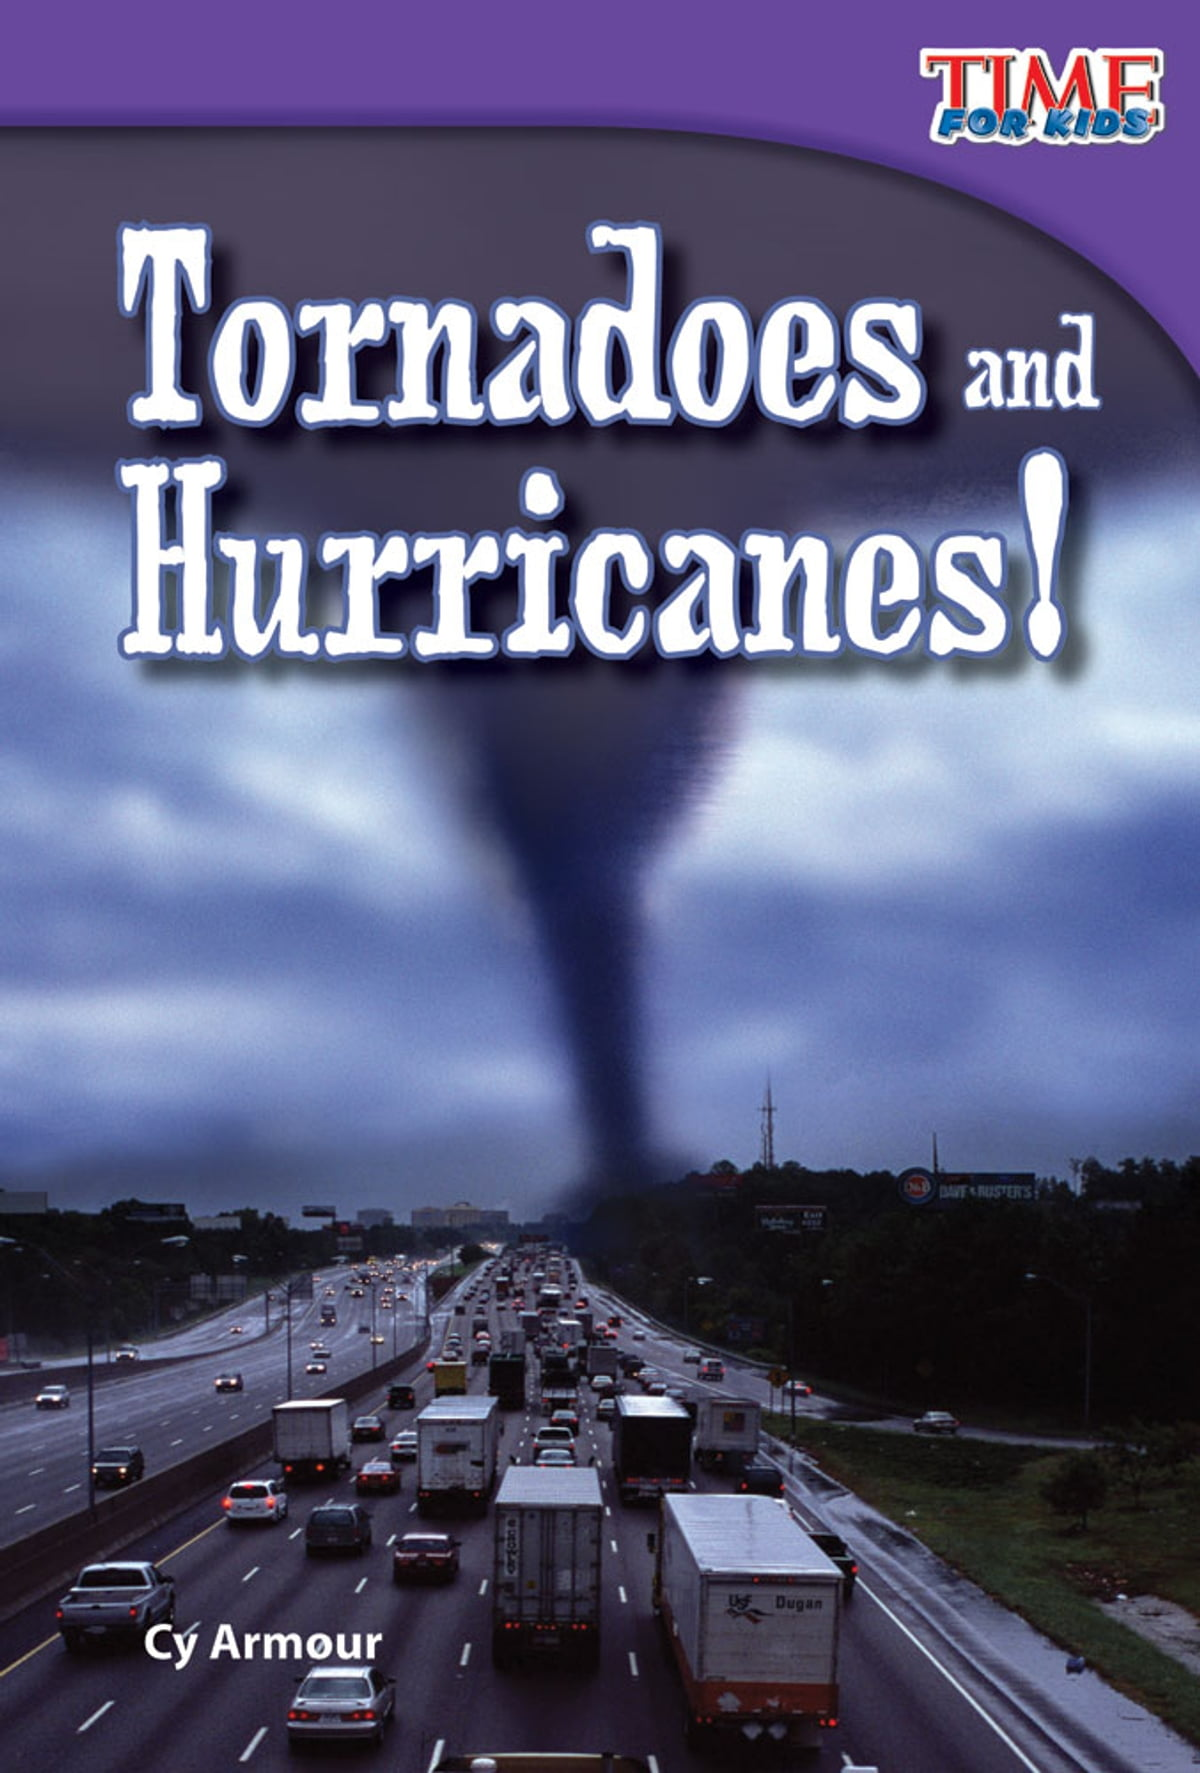 Tornadoes and Hurricanes! eBook by Cy Armour - 9781545700877 | Rakuten Kobo